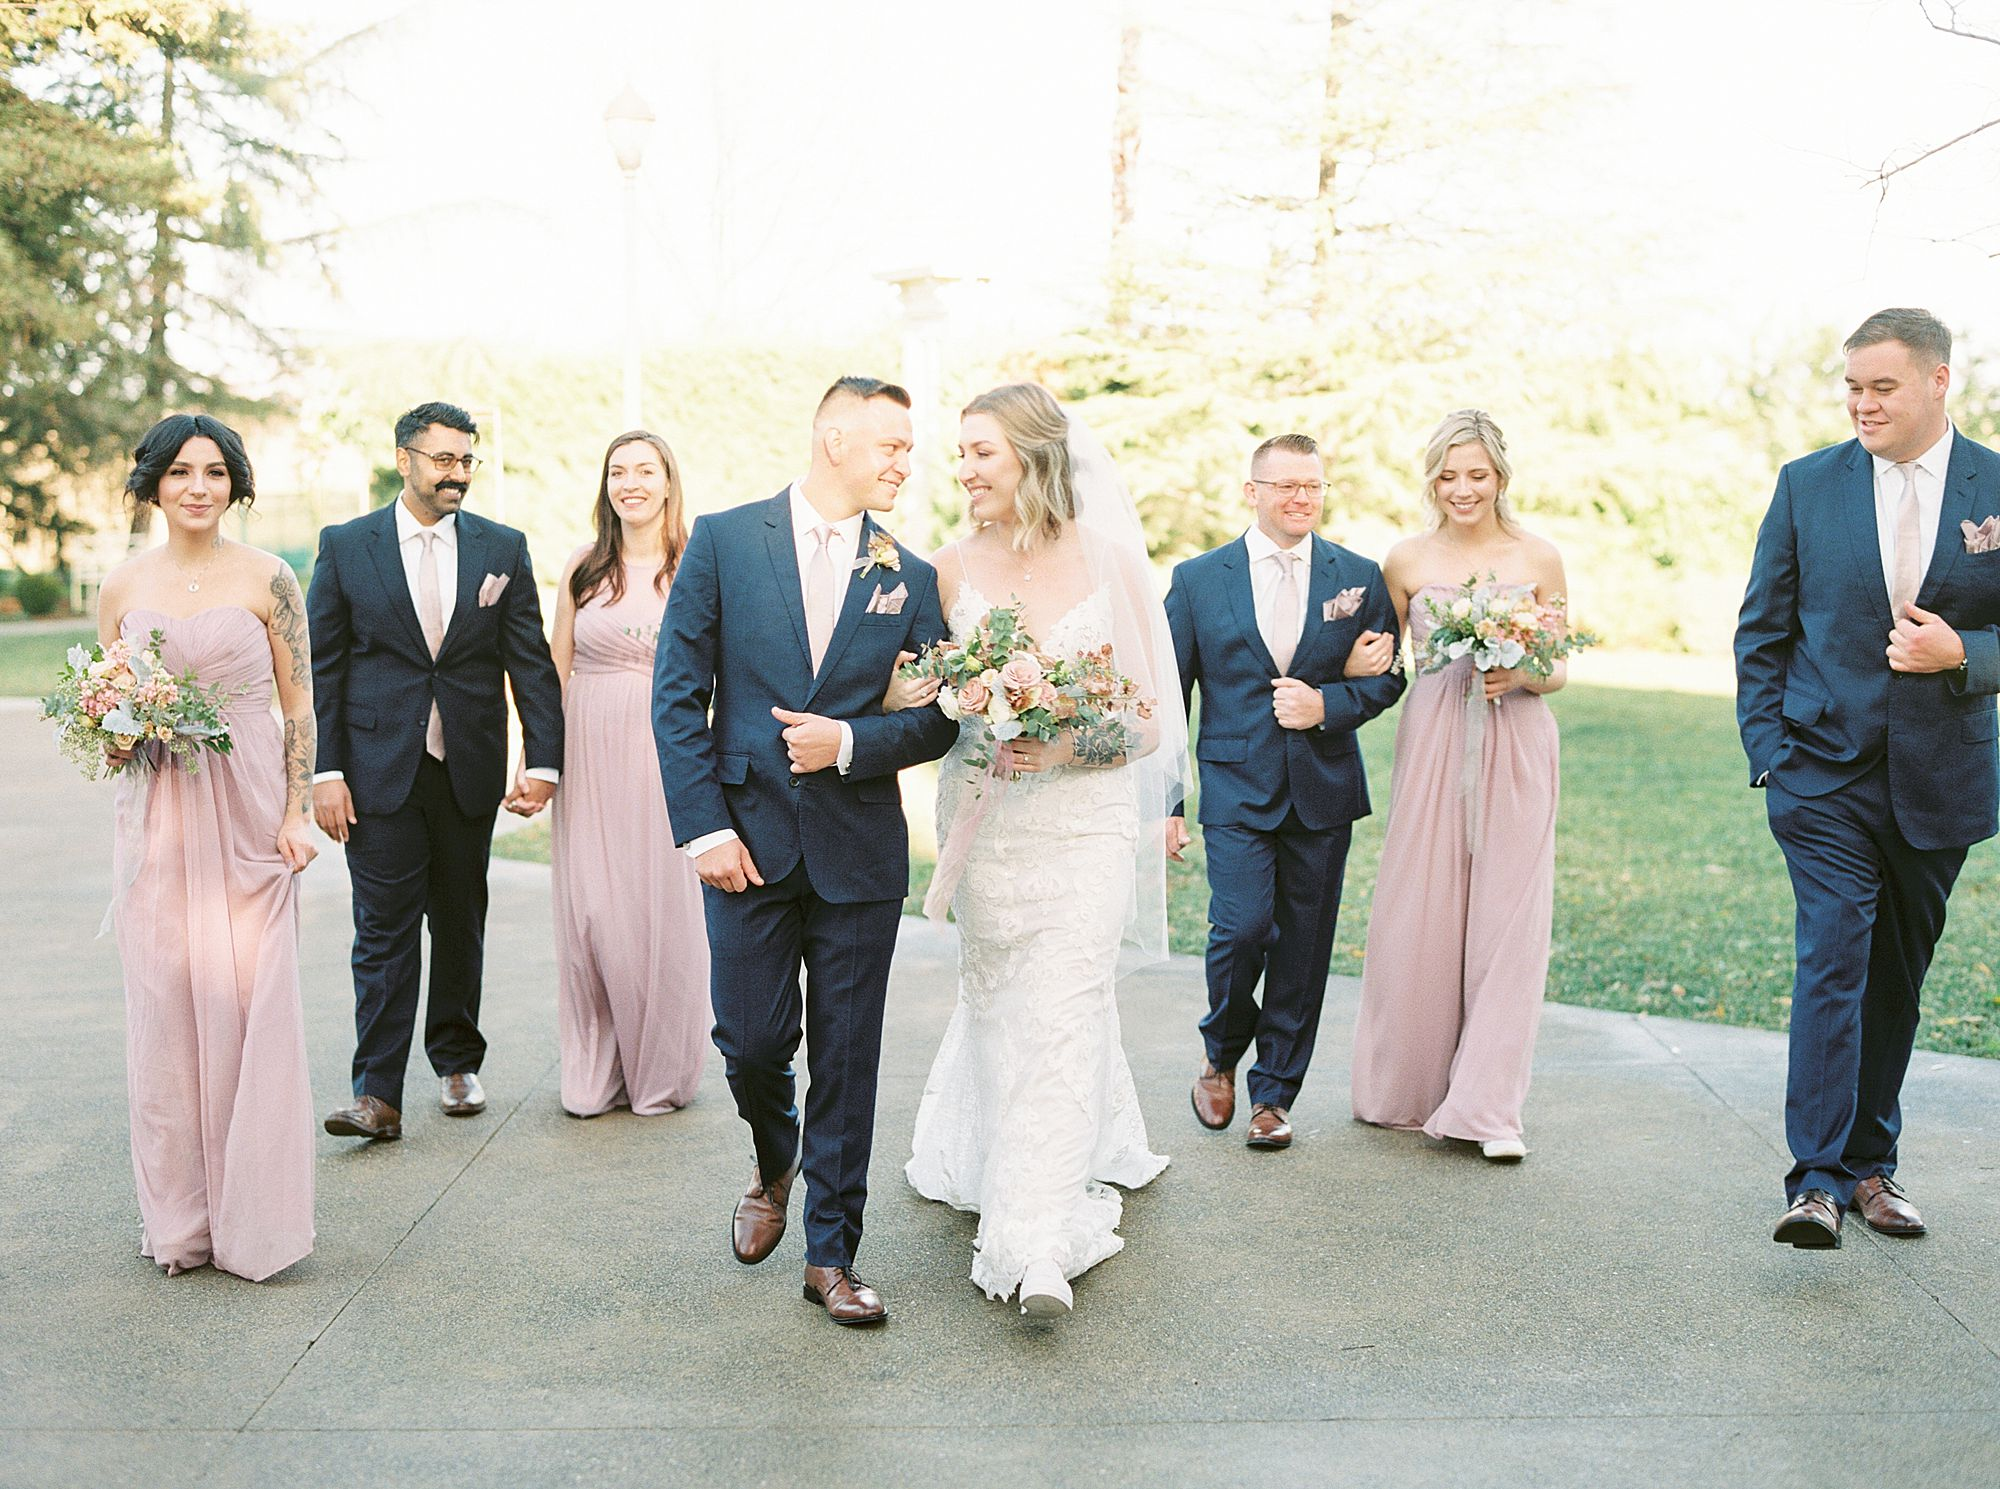 Inn at Park Winters Wedding - Lindsay and Shane - Ashley Baumgartner - Park Winters Wedding Photographer - Sacramento Wedding Photographer_0040.jpg